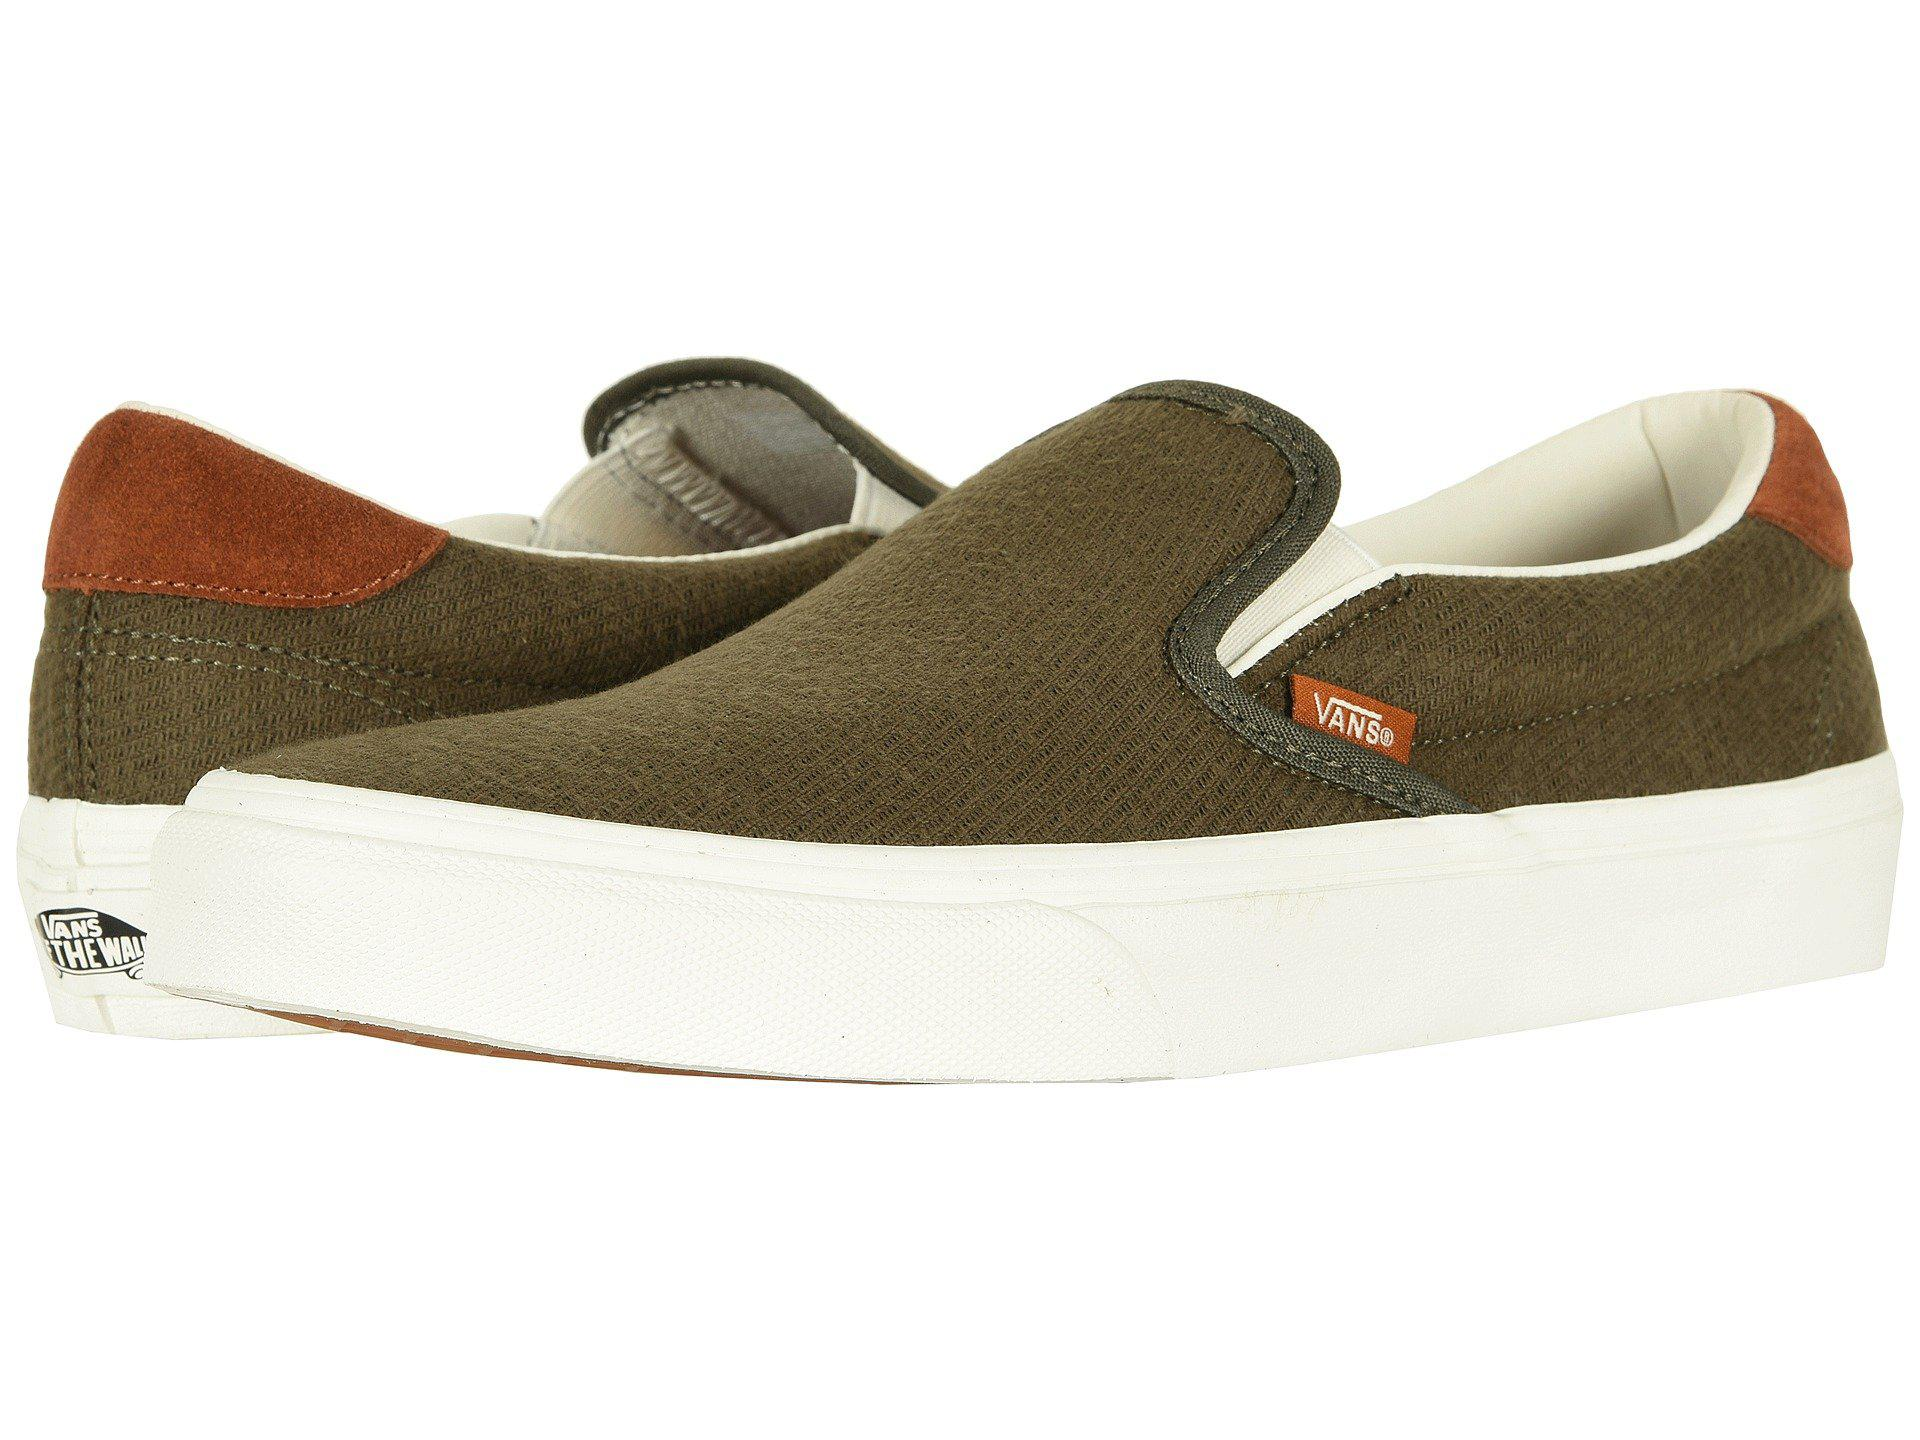 e223aba595 Lyst - Vans Slip-on 59 ((flannel) Dusty Olive) Skate Shoes in Green ...